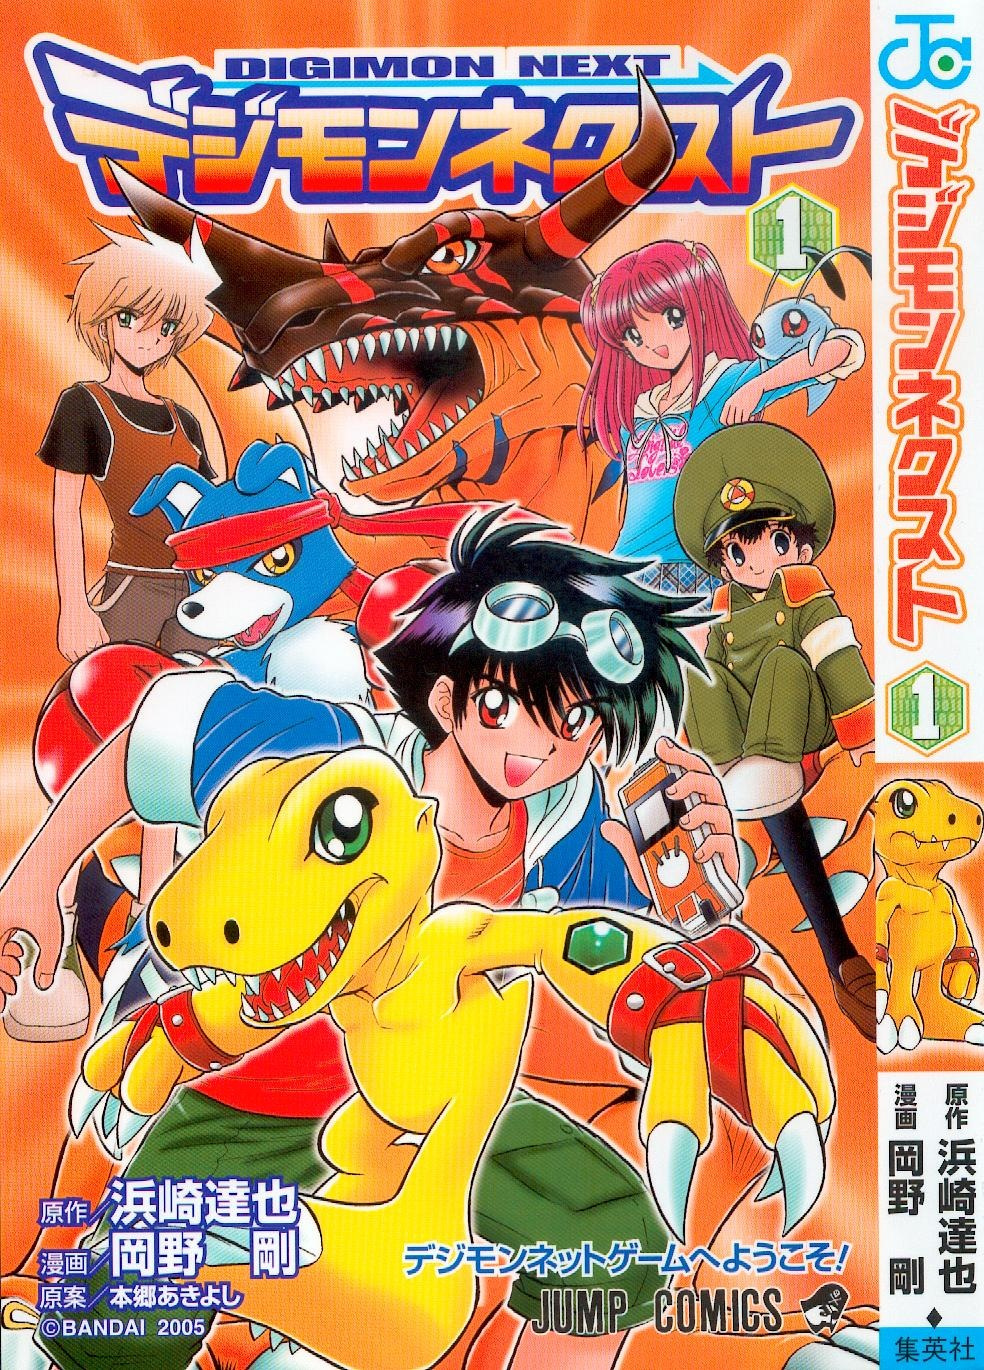 [Imagen: list-of-digimon-next-chapters-v1.jpg]